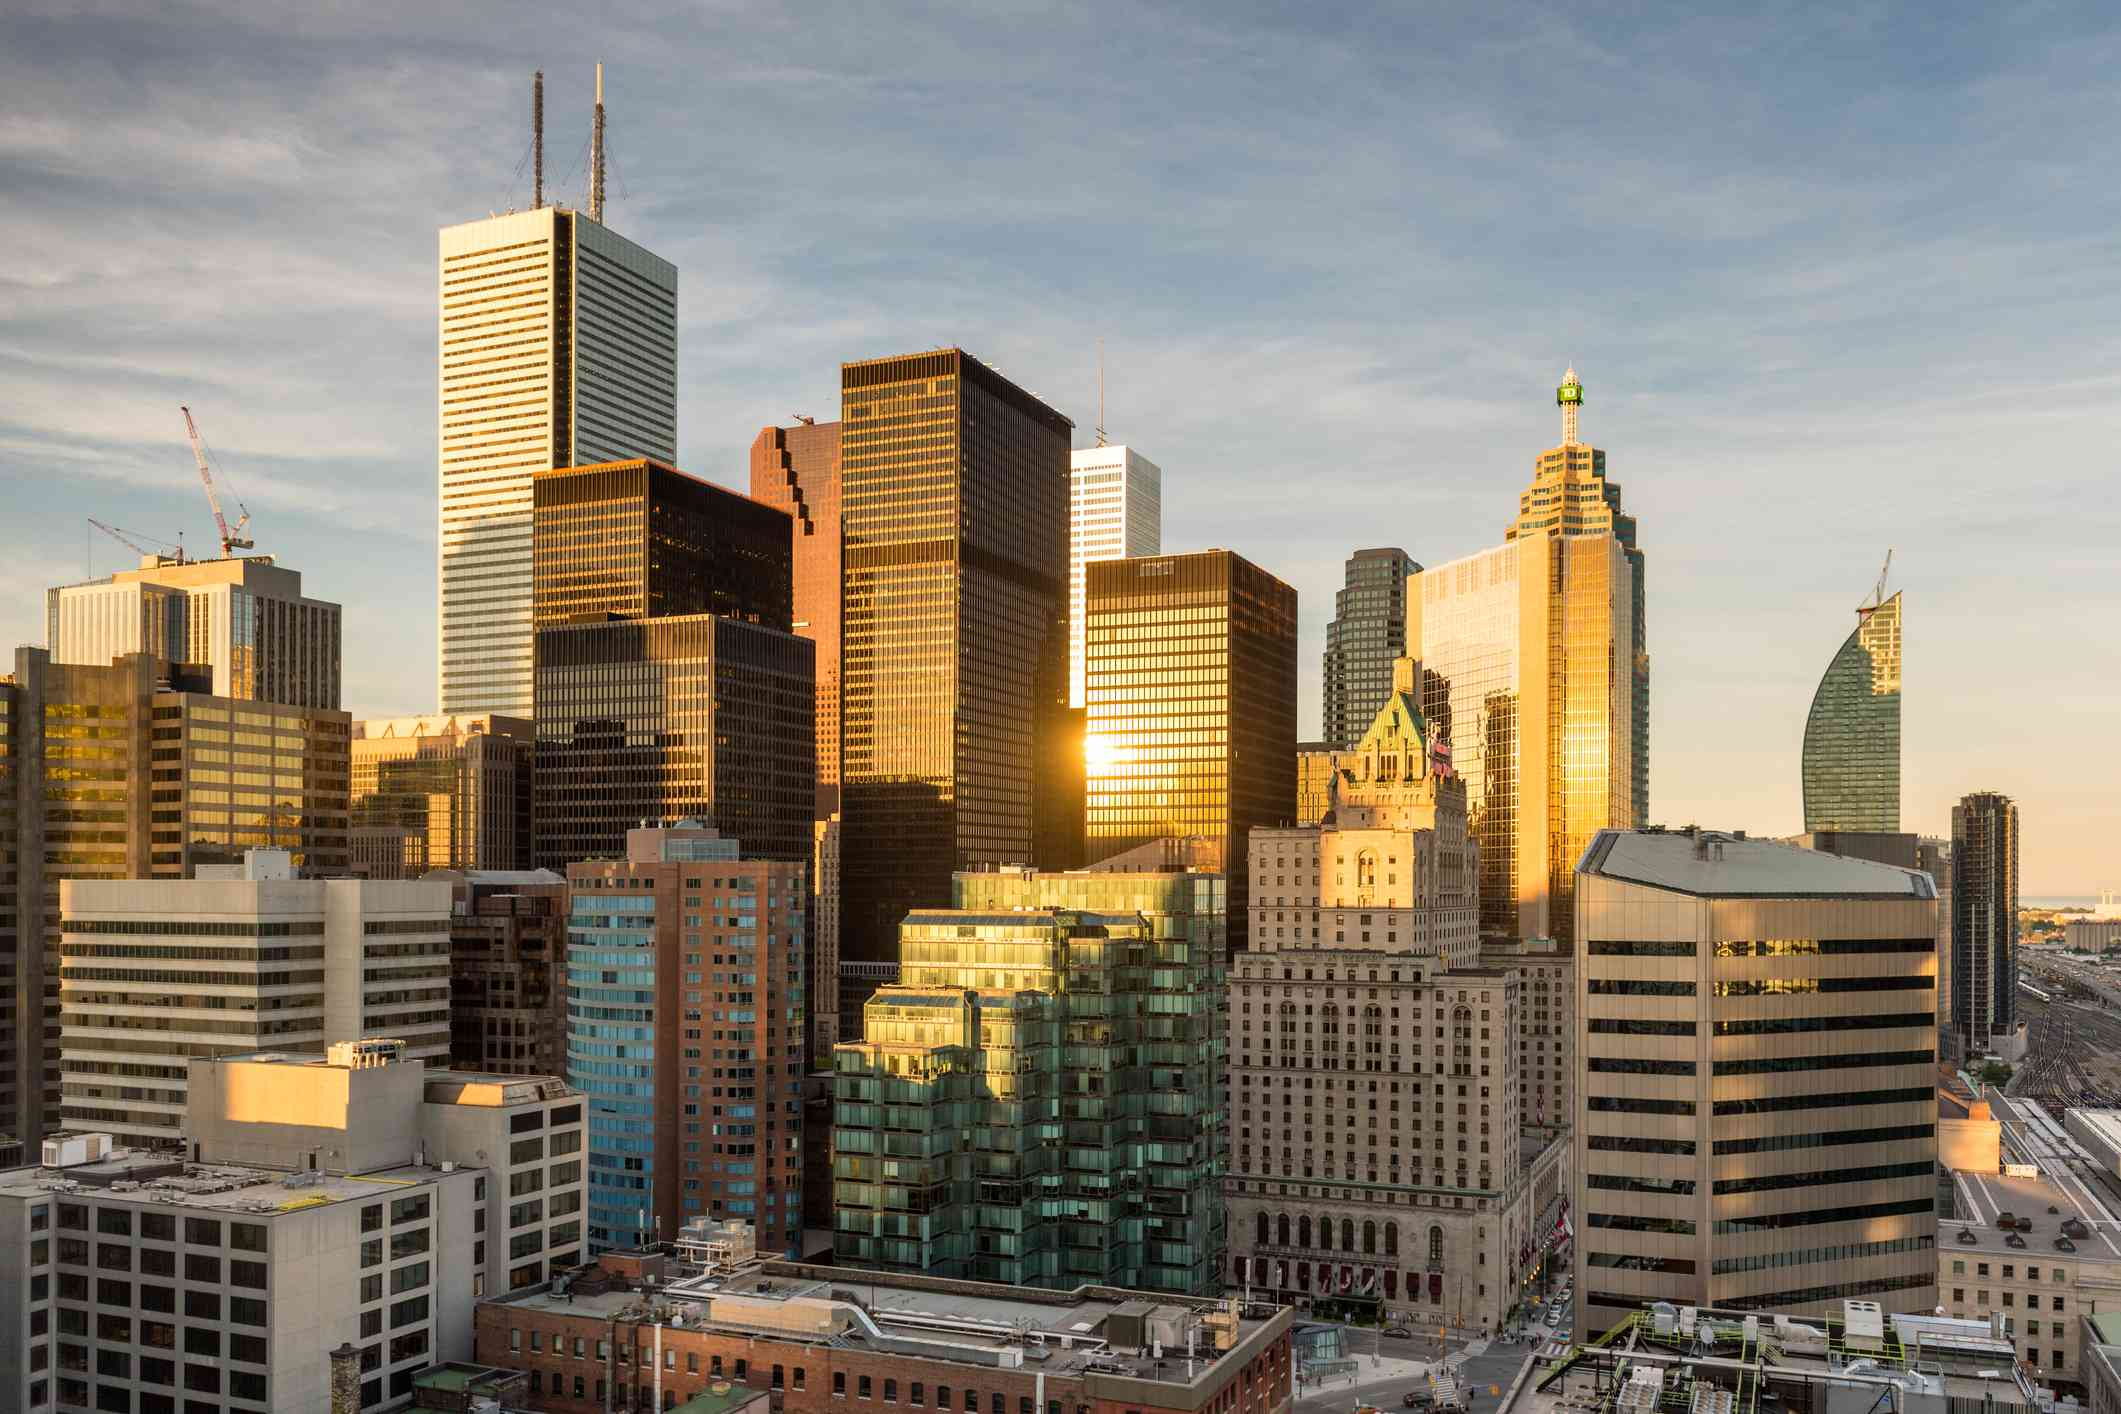 Cityscape of the financial district in Toronto, Ontario, Canada